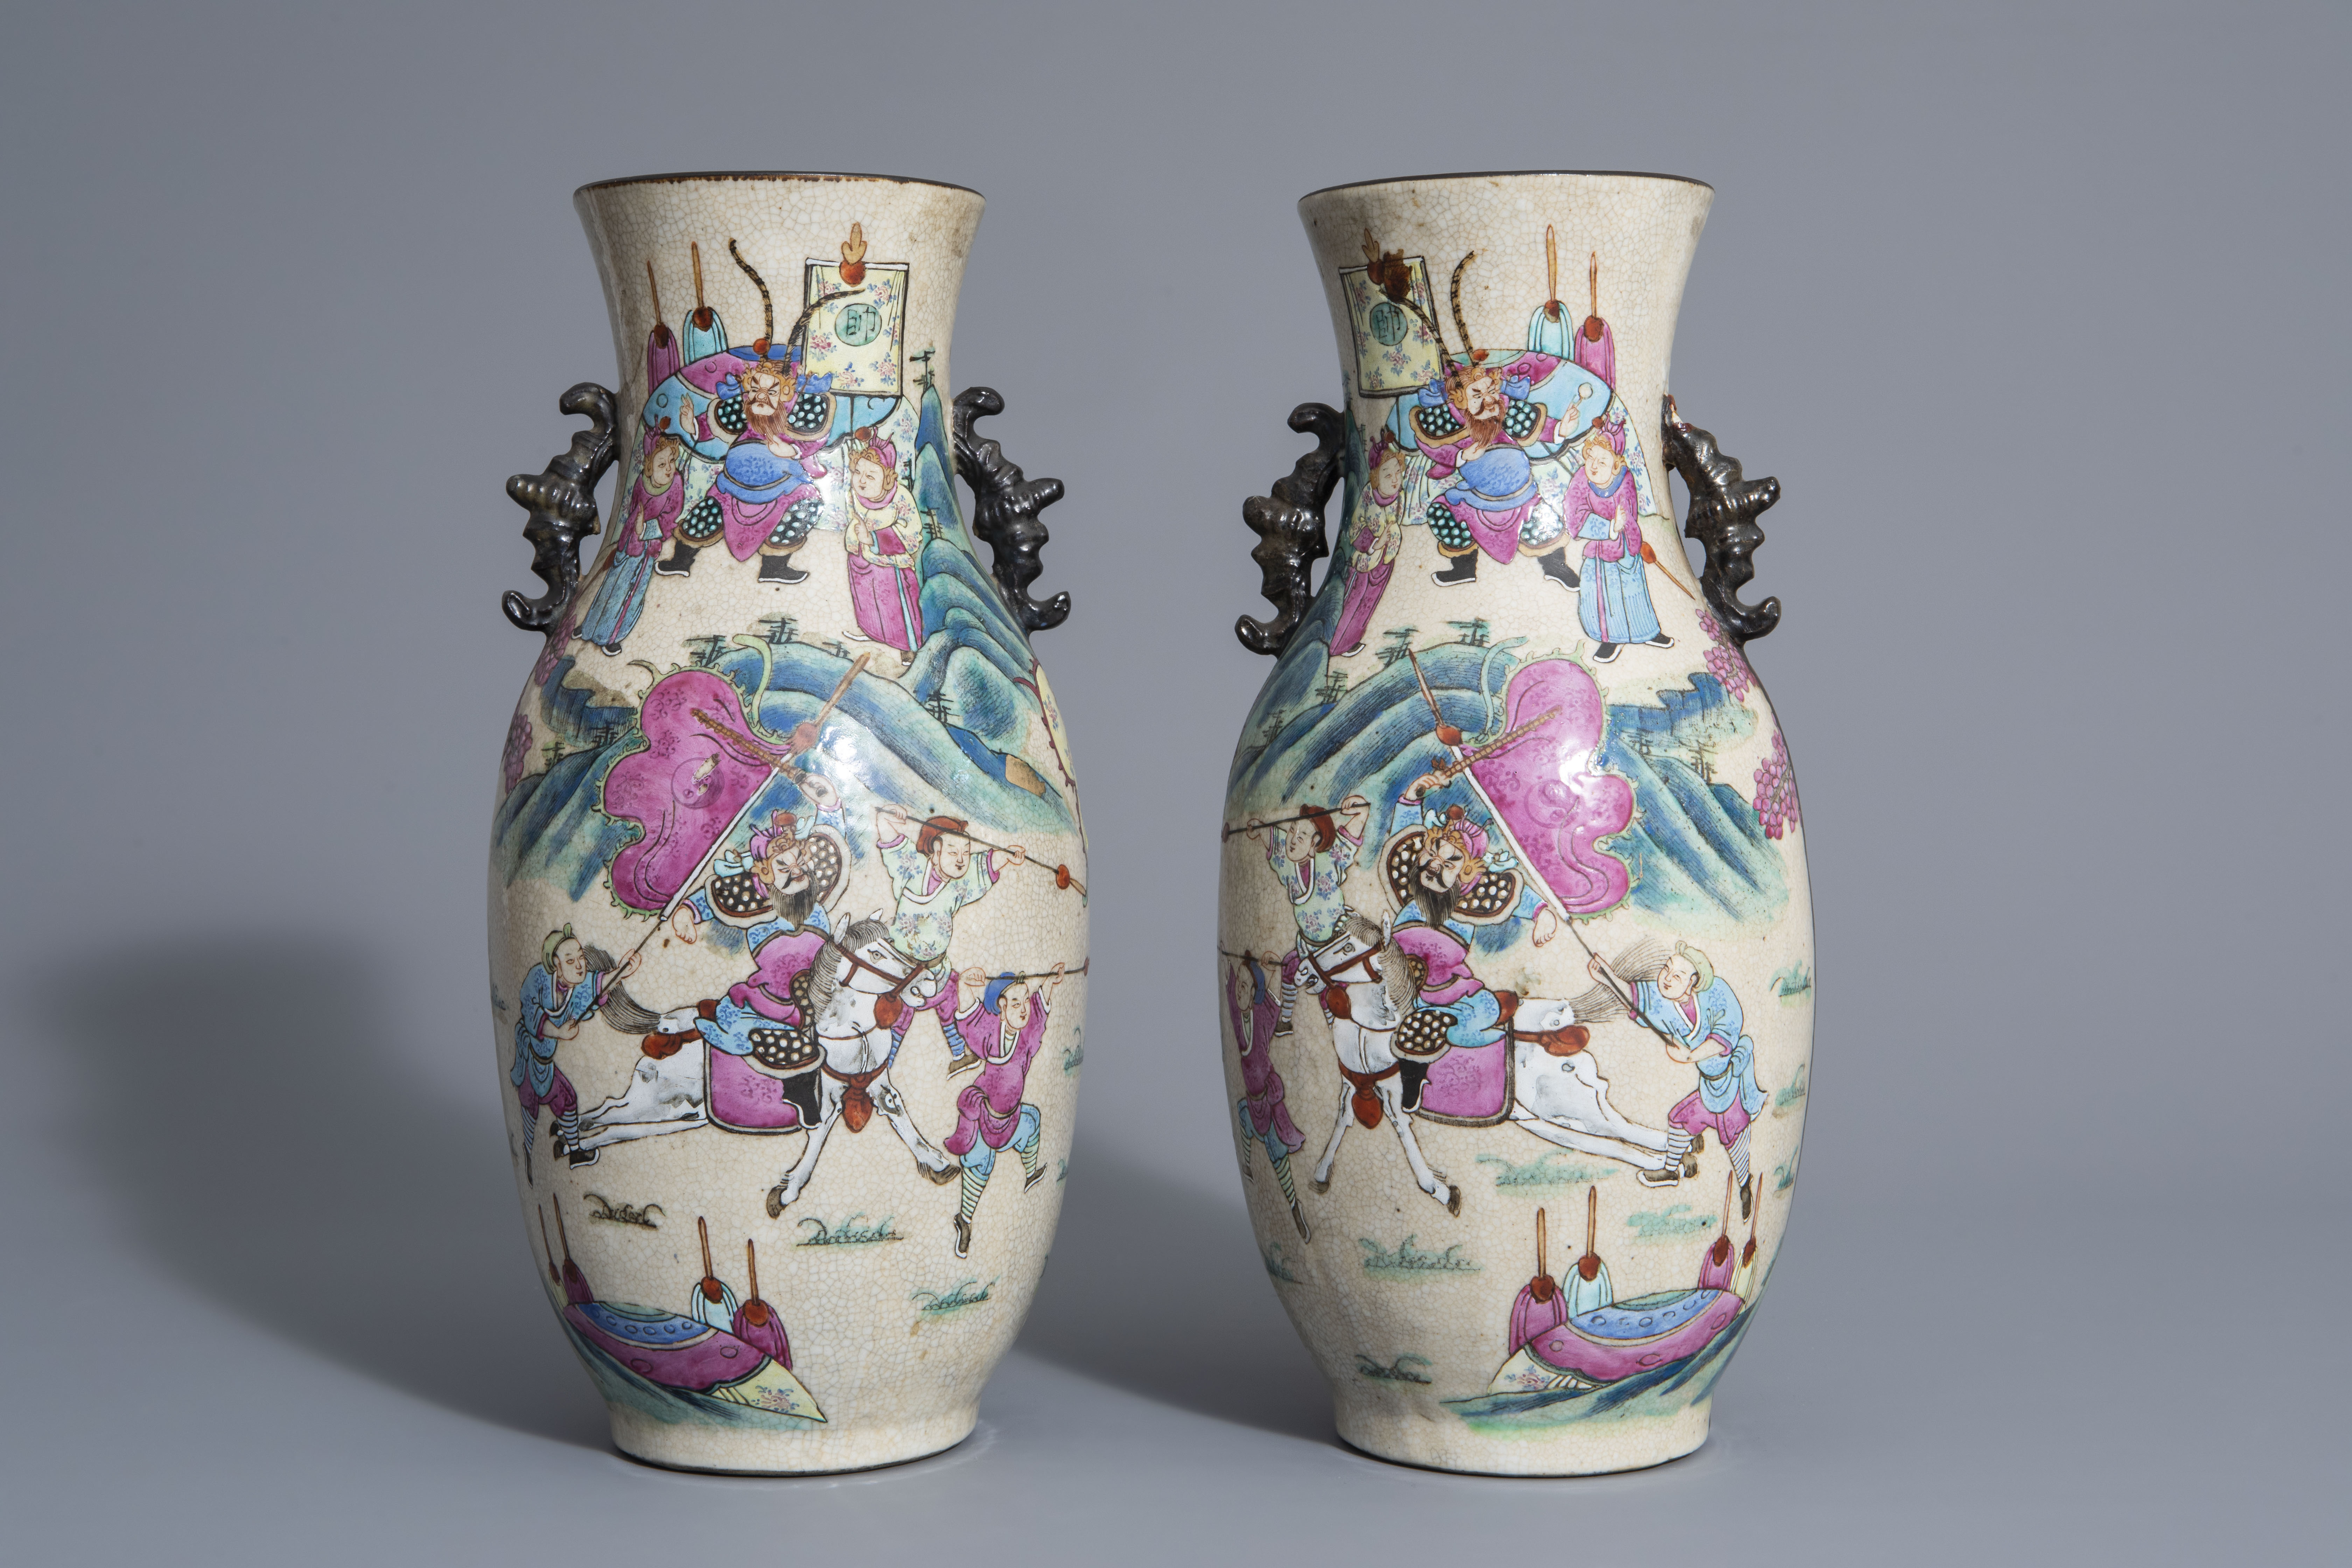 A pair of Chinese Nanking crackle glazed famille rose vases w. warrior scenes on stands, 19th C. - Image 4 of 7